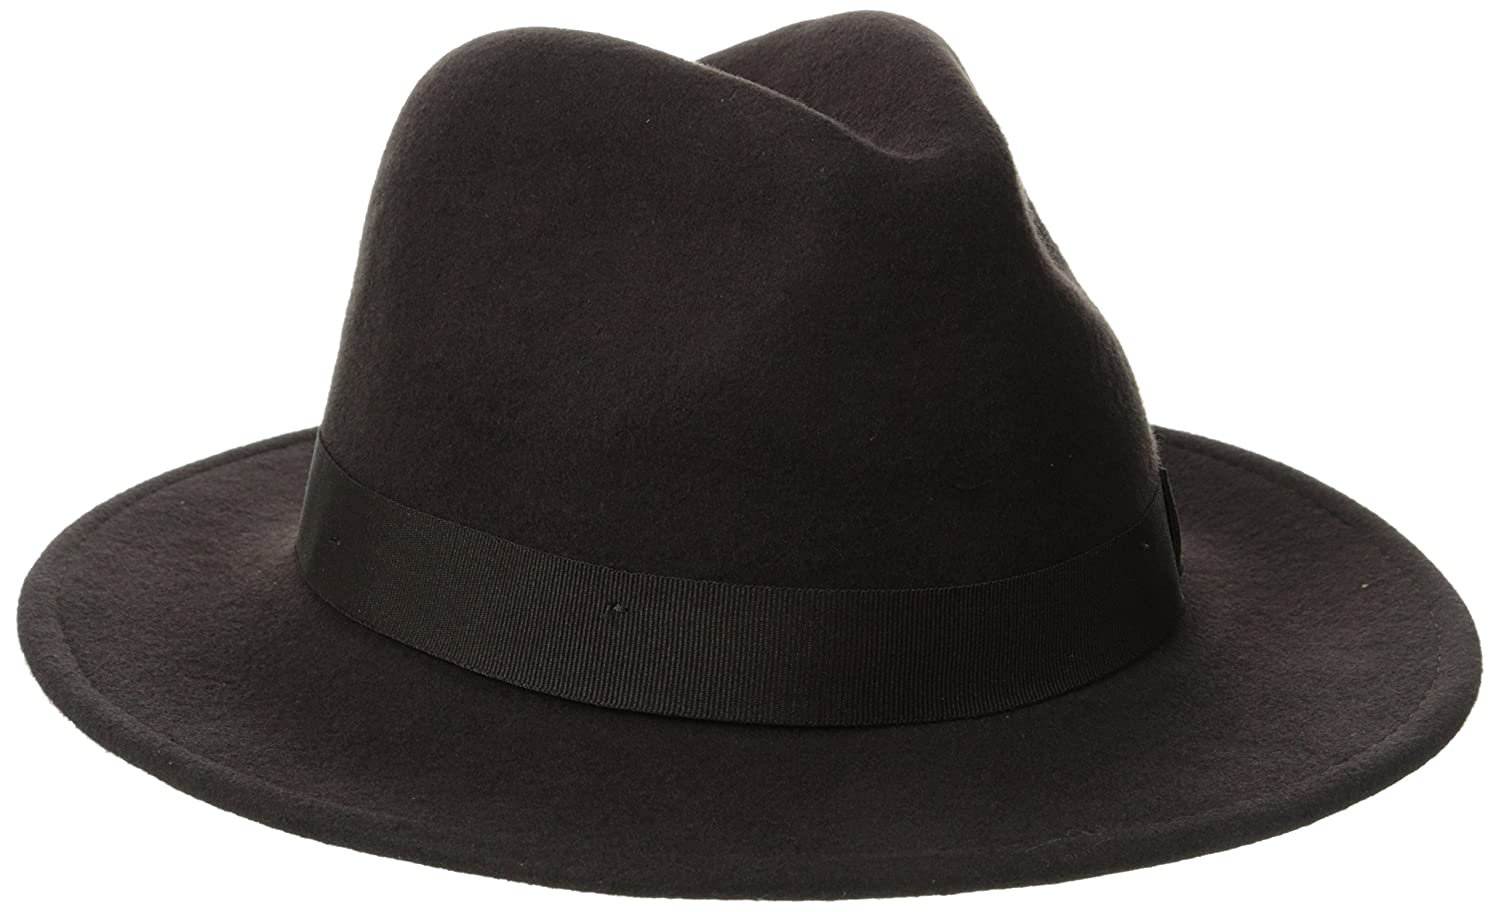 Scala Classico Men's Crushable Felt Safari Hat DF3